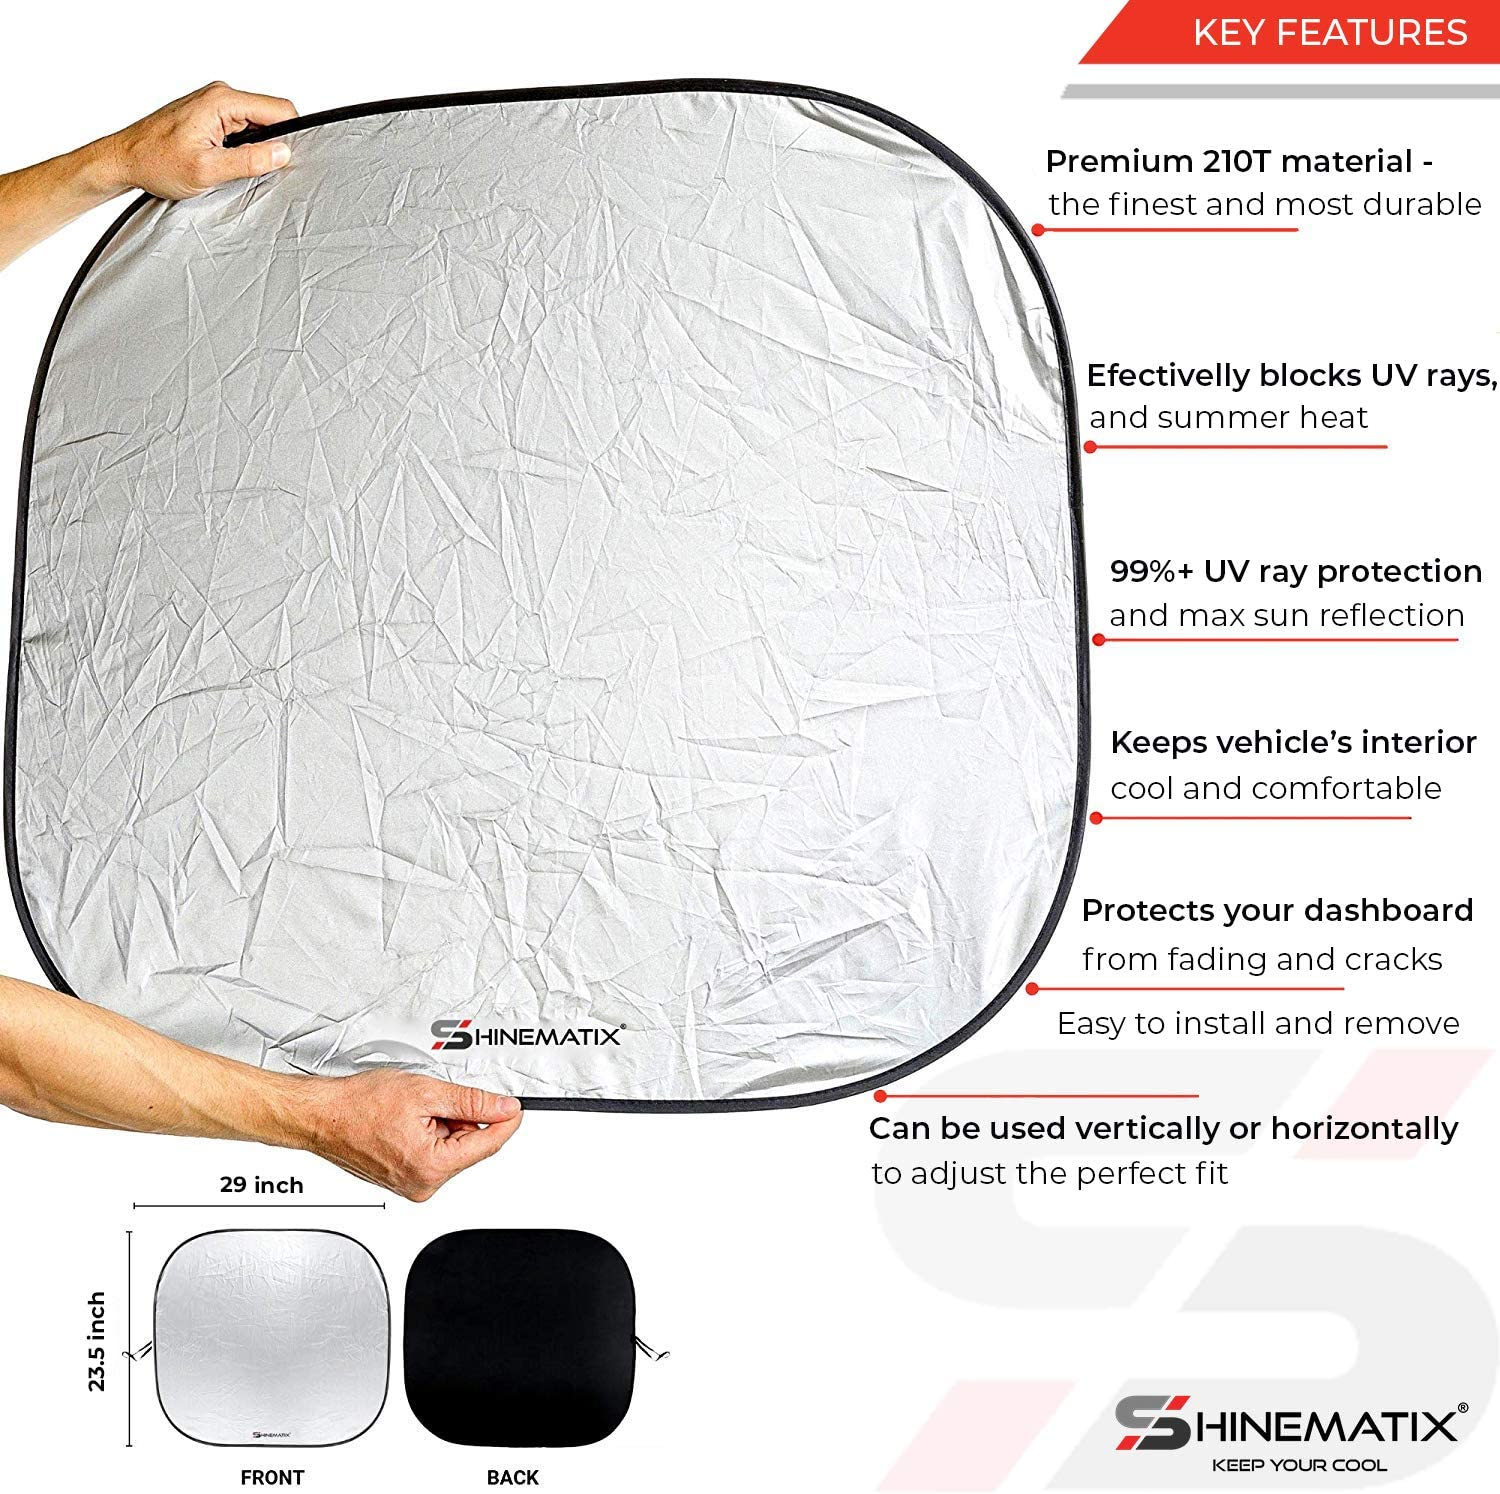 Best 210T Reflective Material Blocks 99/% UV Rays and Keeps Your Vehicle Cool SHINEMATIX 2-Piece Windshield Sun Shade Large Foldable Car Front Window Sunshades for Most Sedans SUVs Trucks Tesla